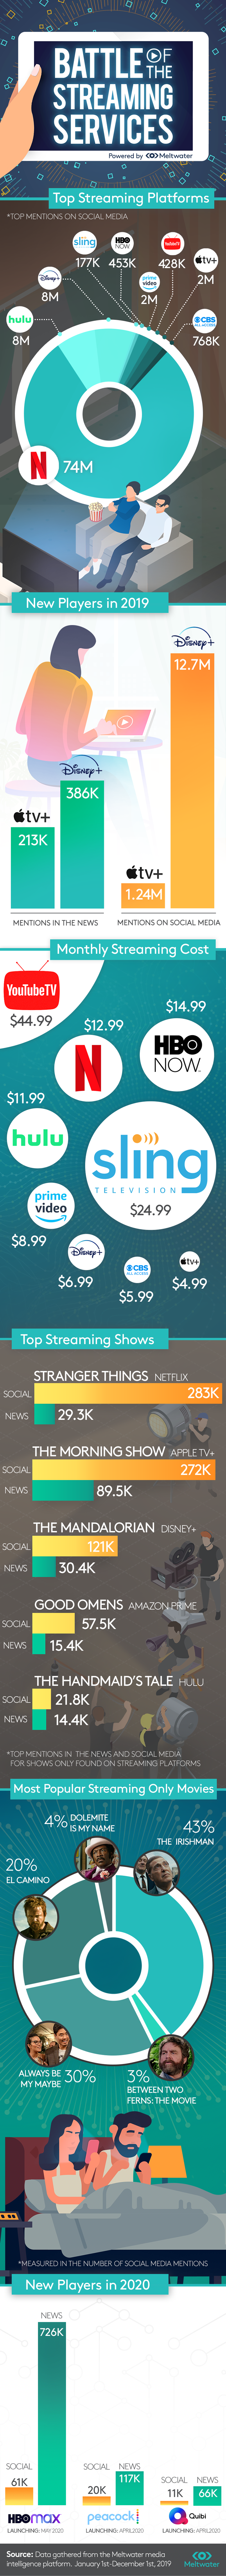 2019-12-Battle-of-the-Streaming-Services-Infographic.png